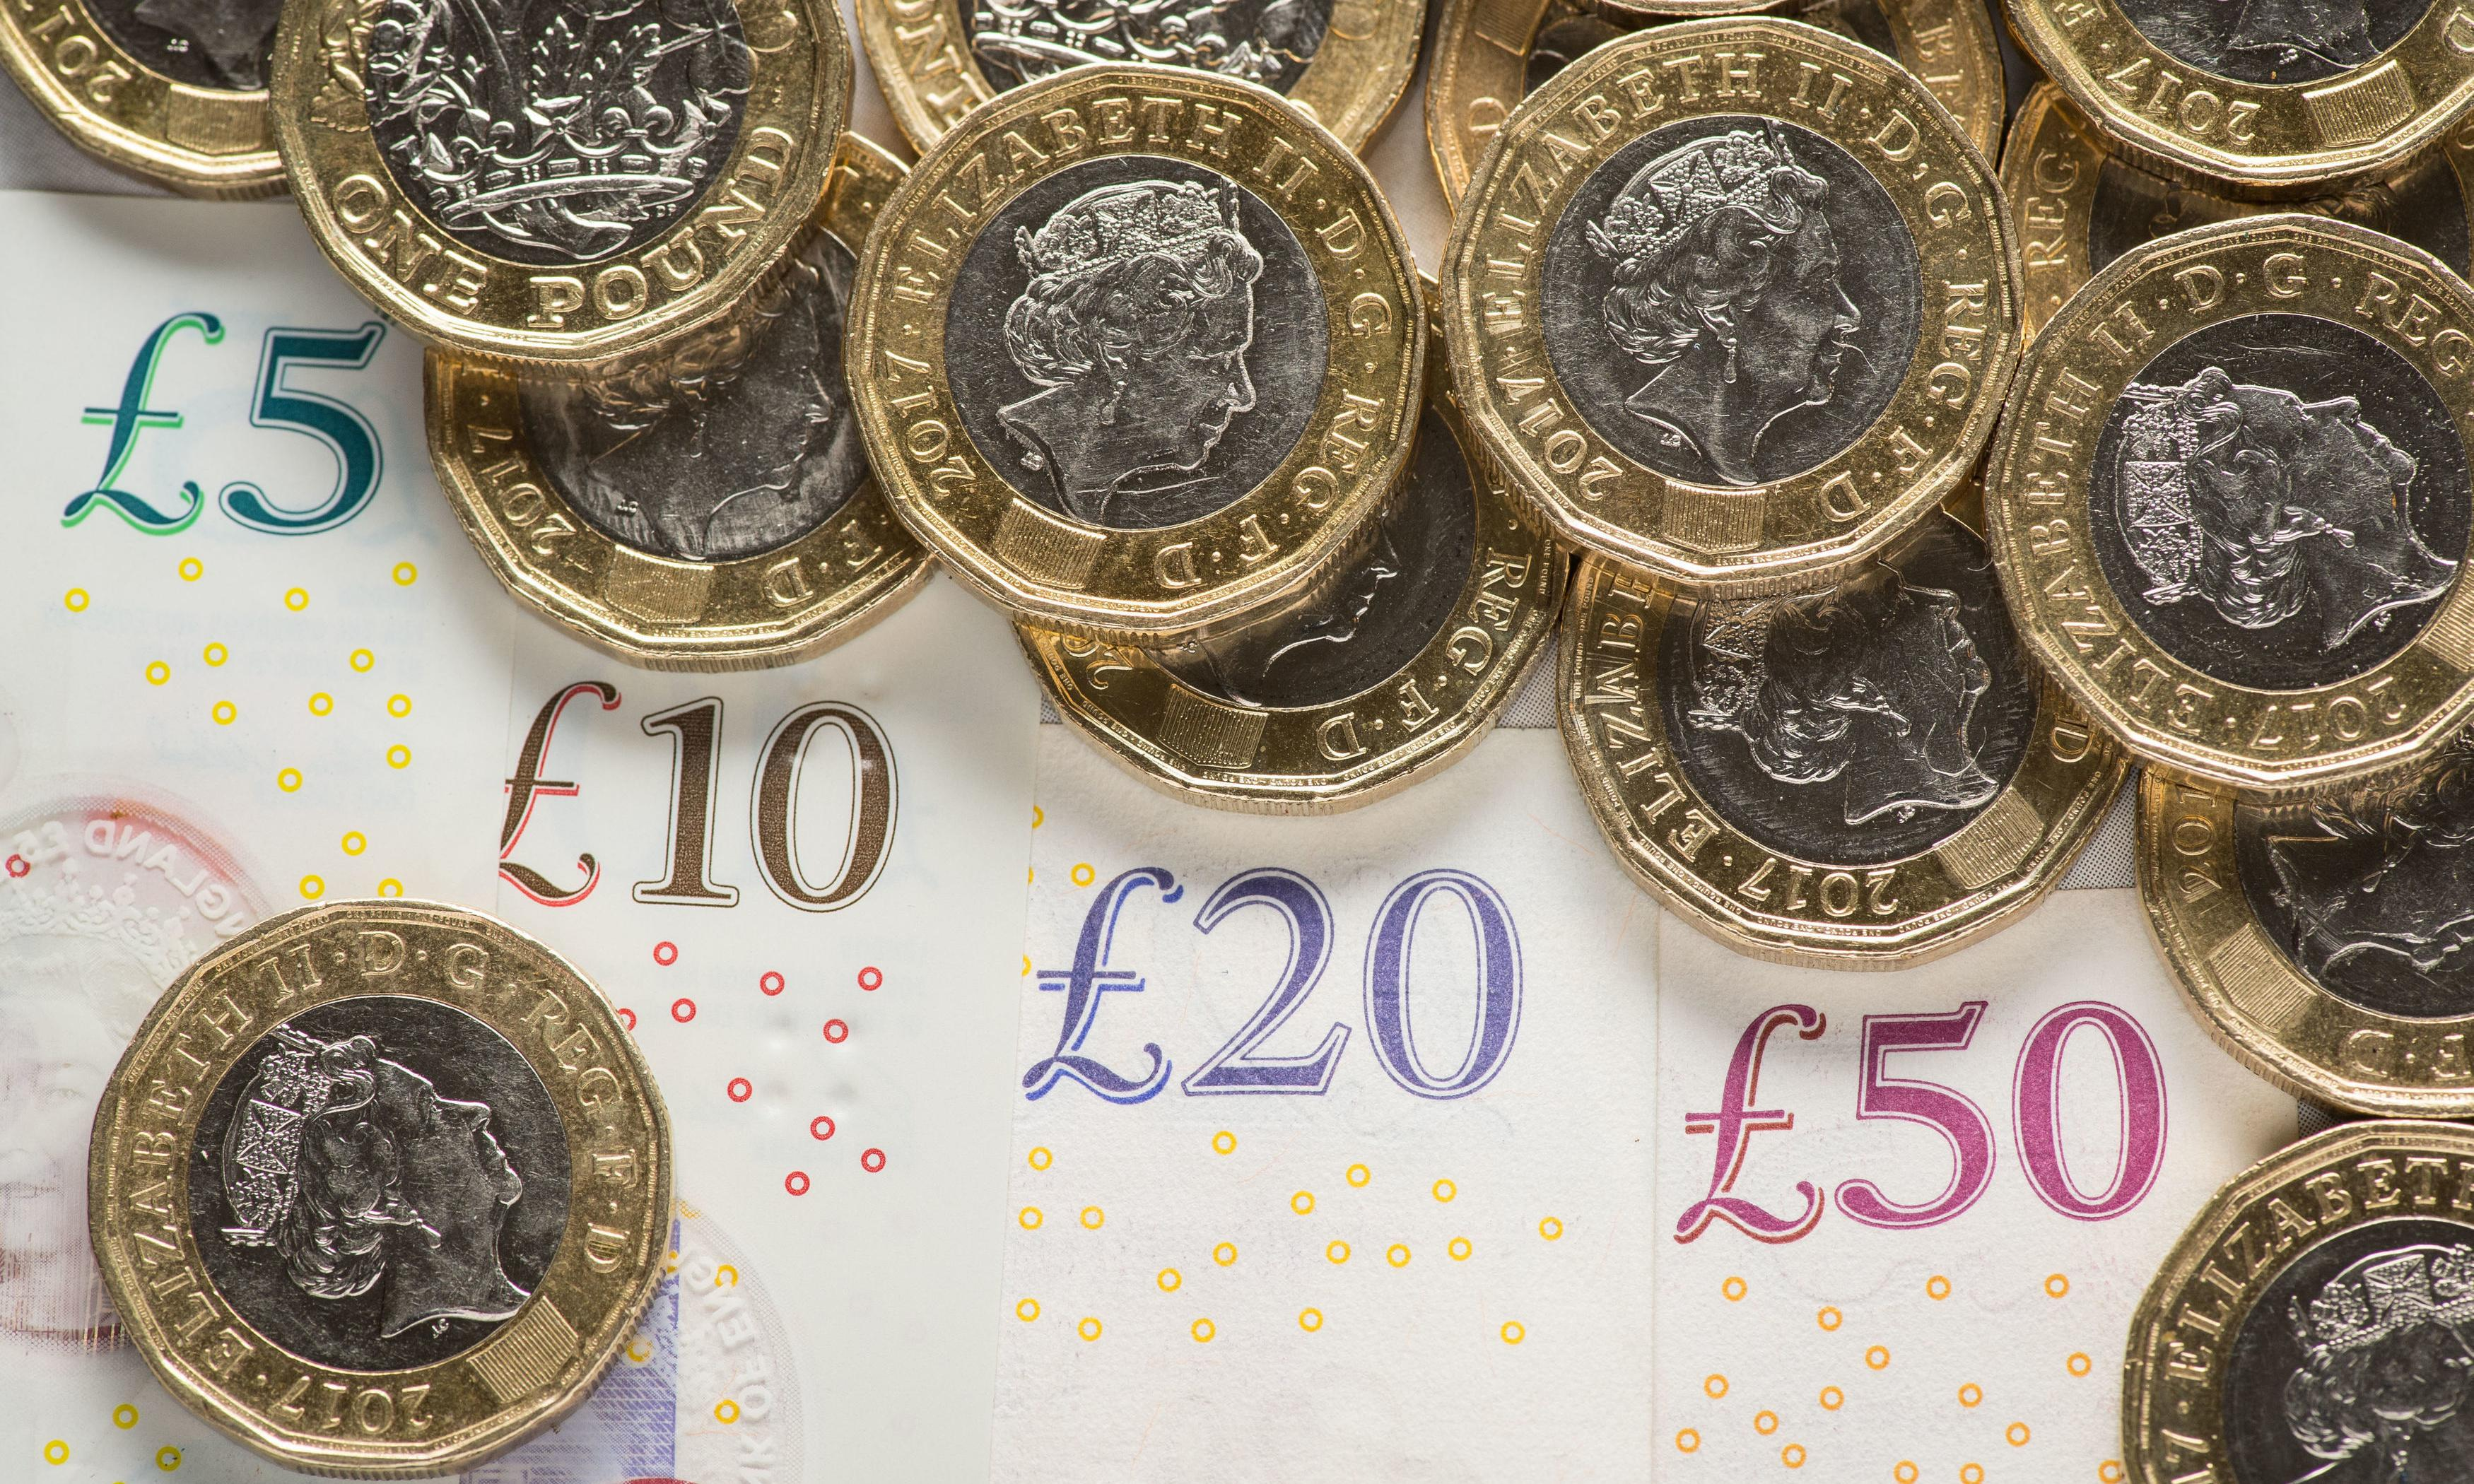 Millions at risk of retiring on incomes below living wage